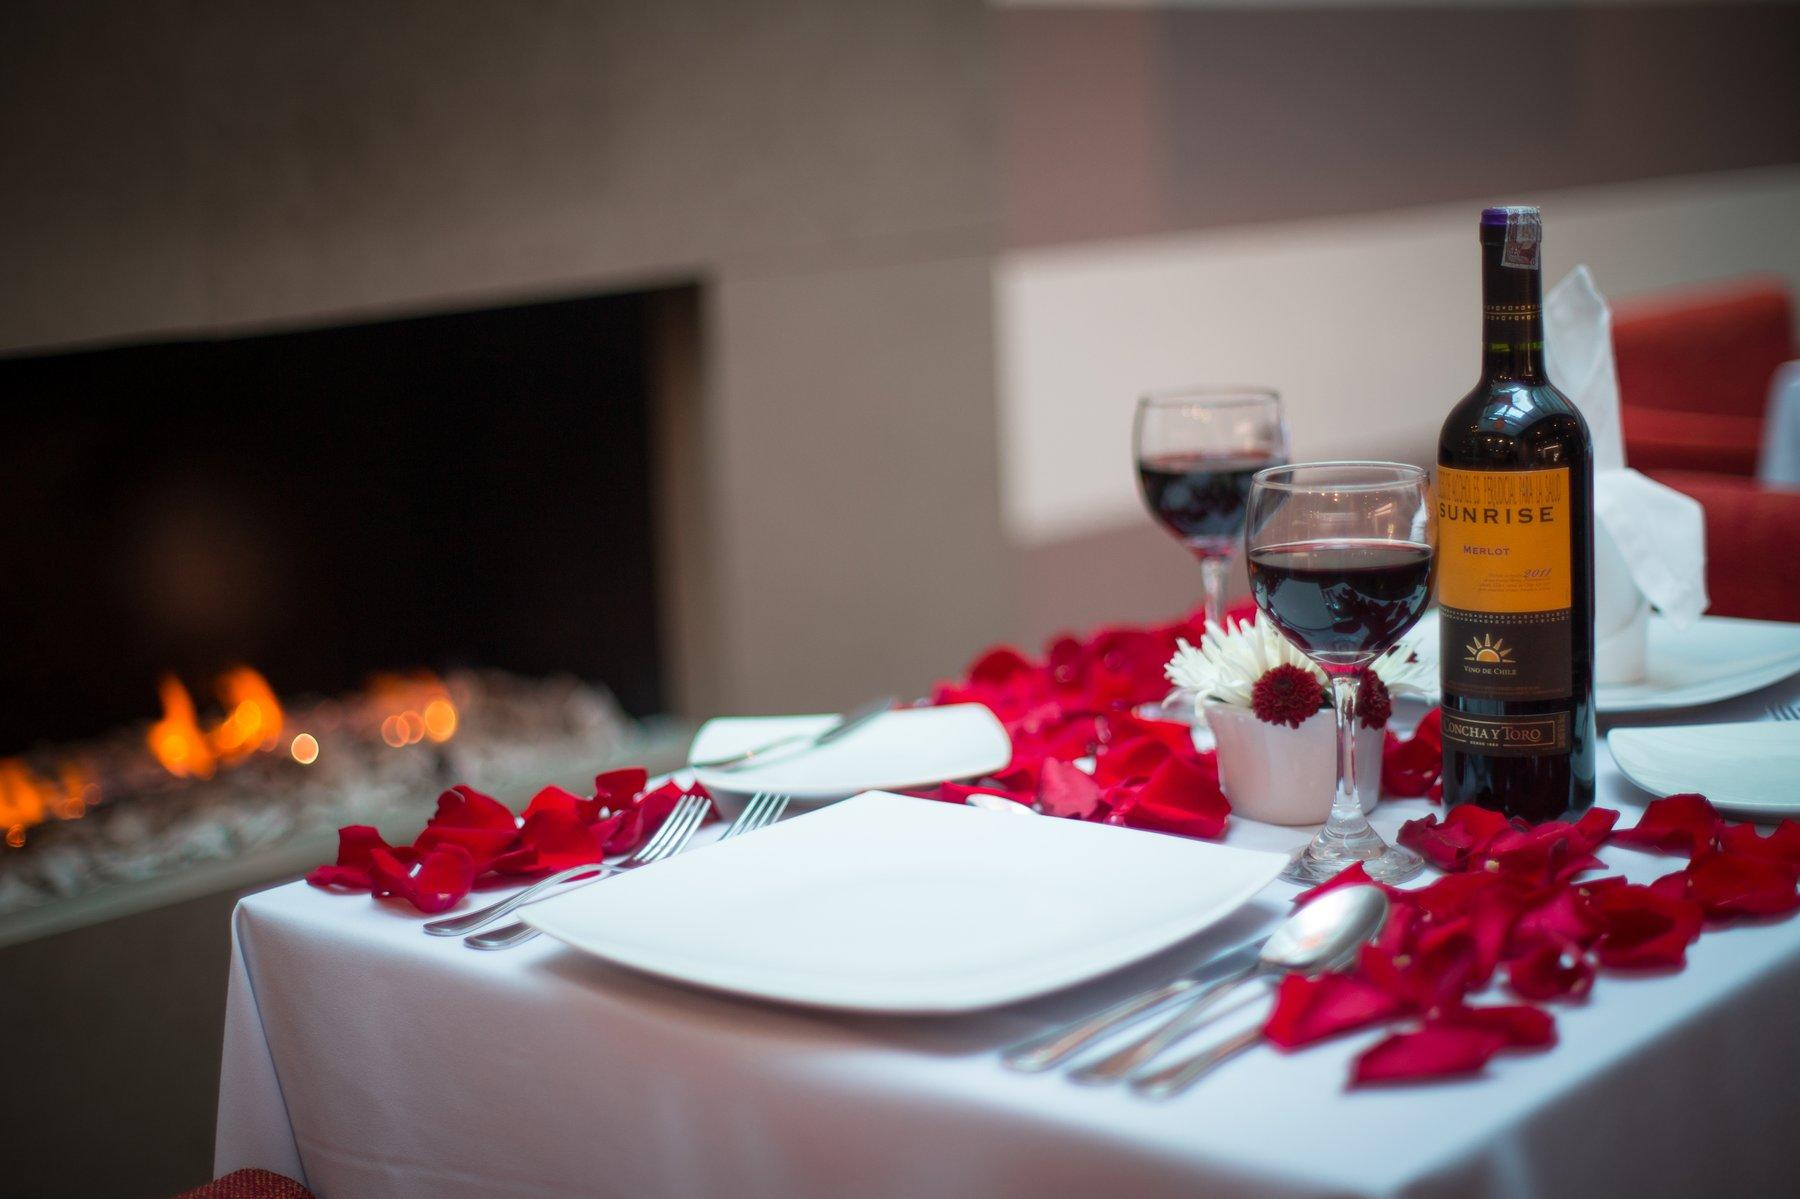 Romantic Setup in front of fireplace